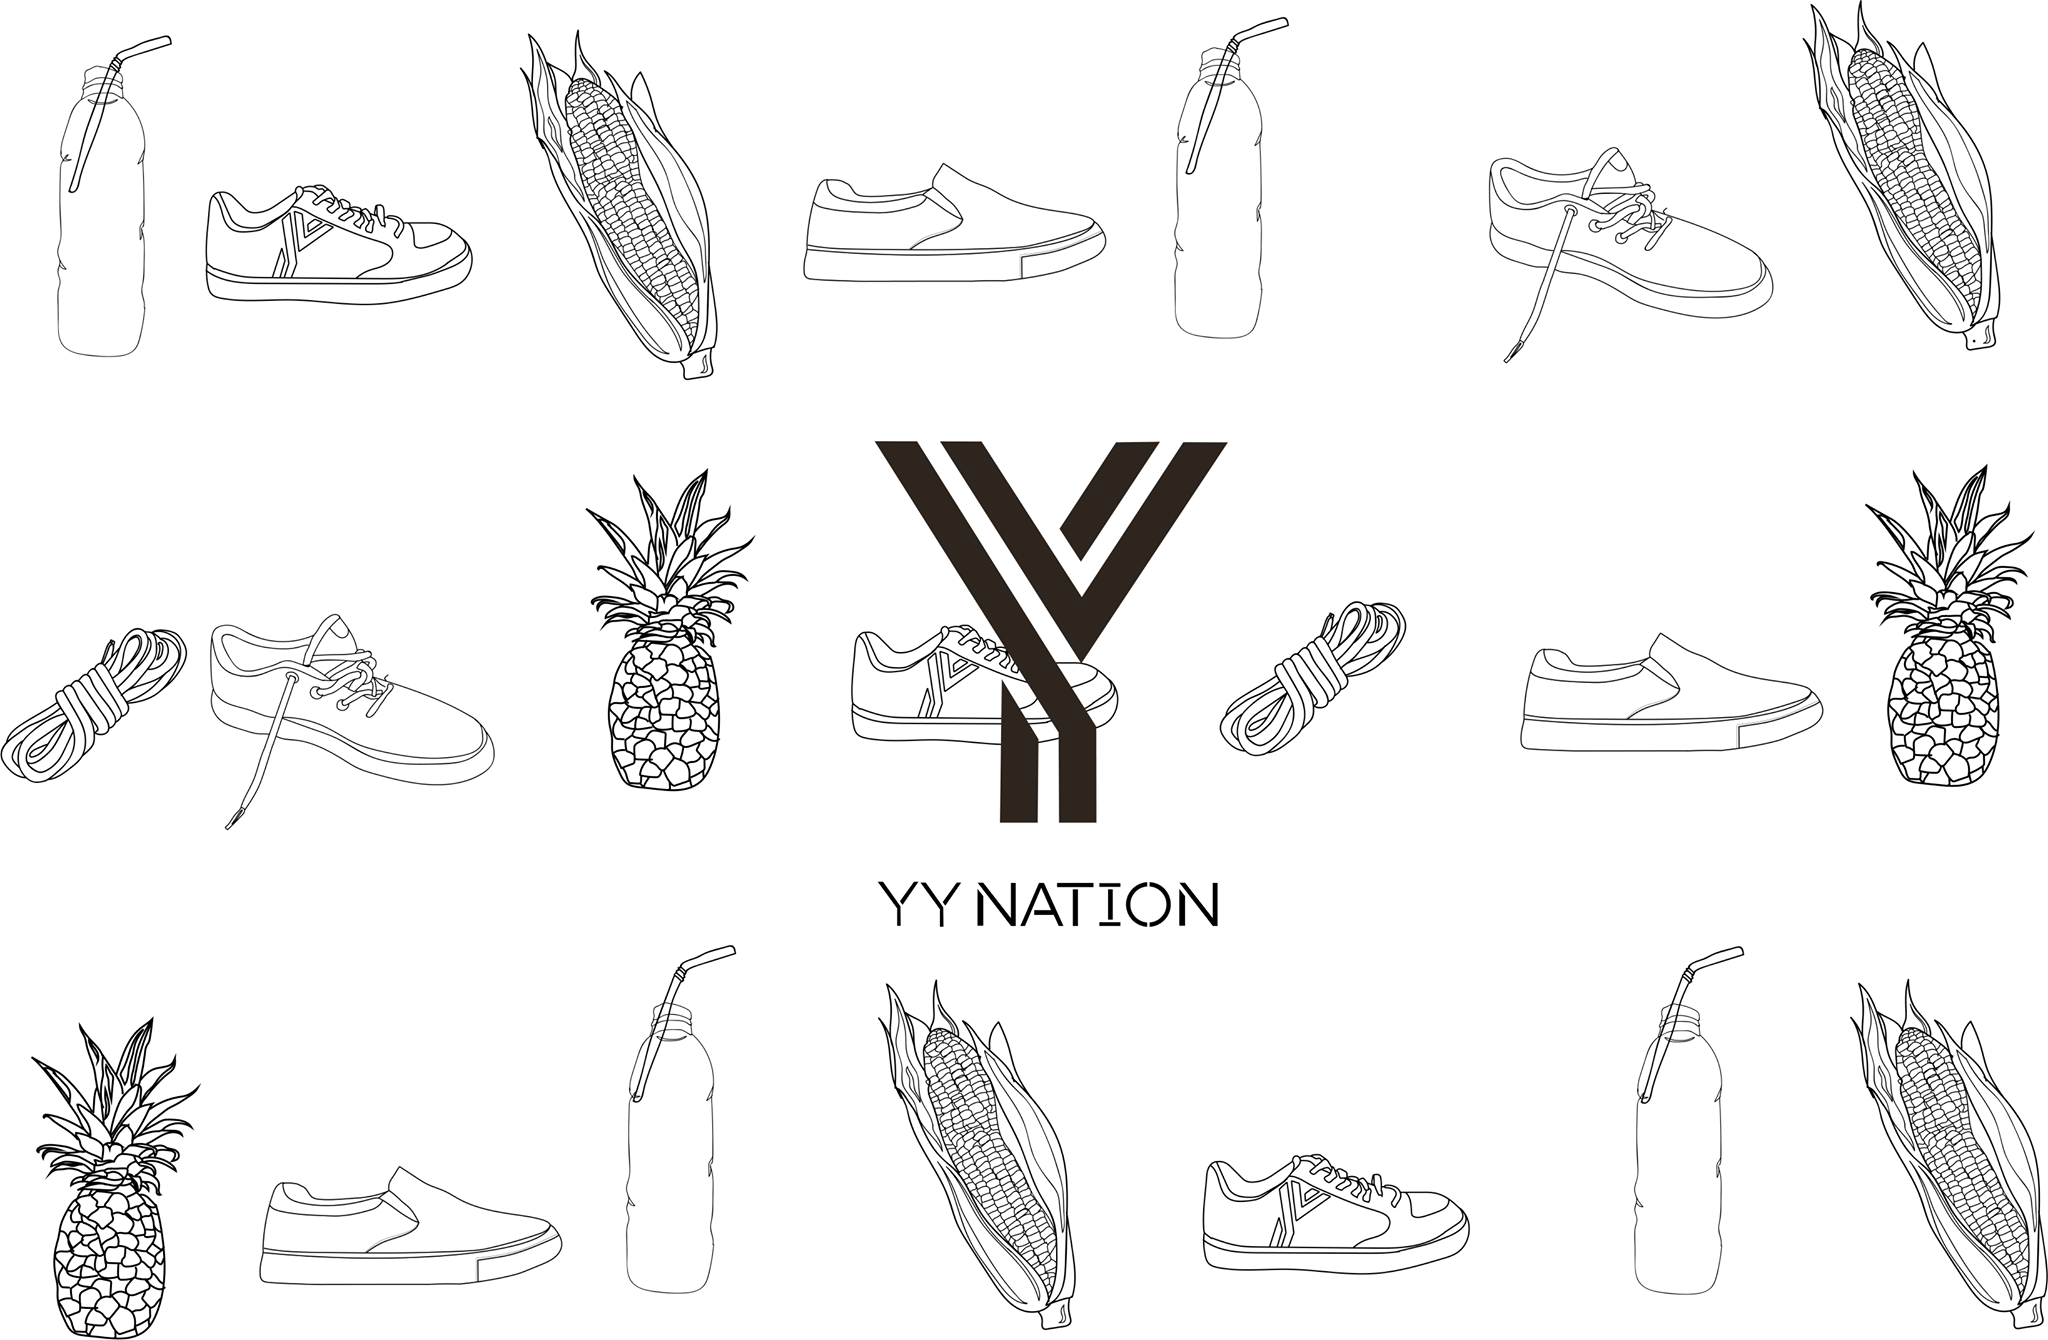 """YY Nation's new footwear collection aims to create """"the world's most sustainable shoe"""